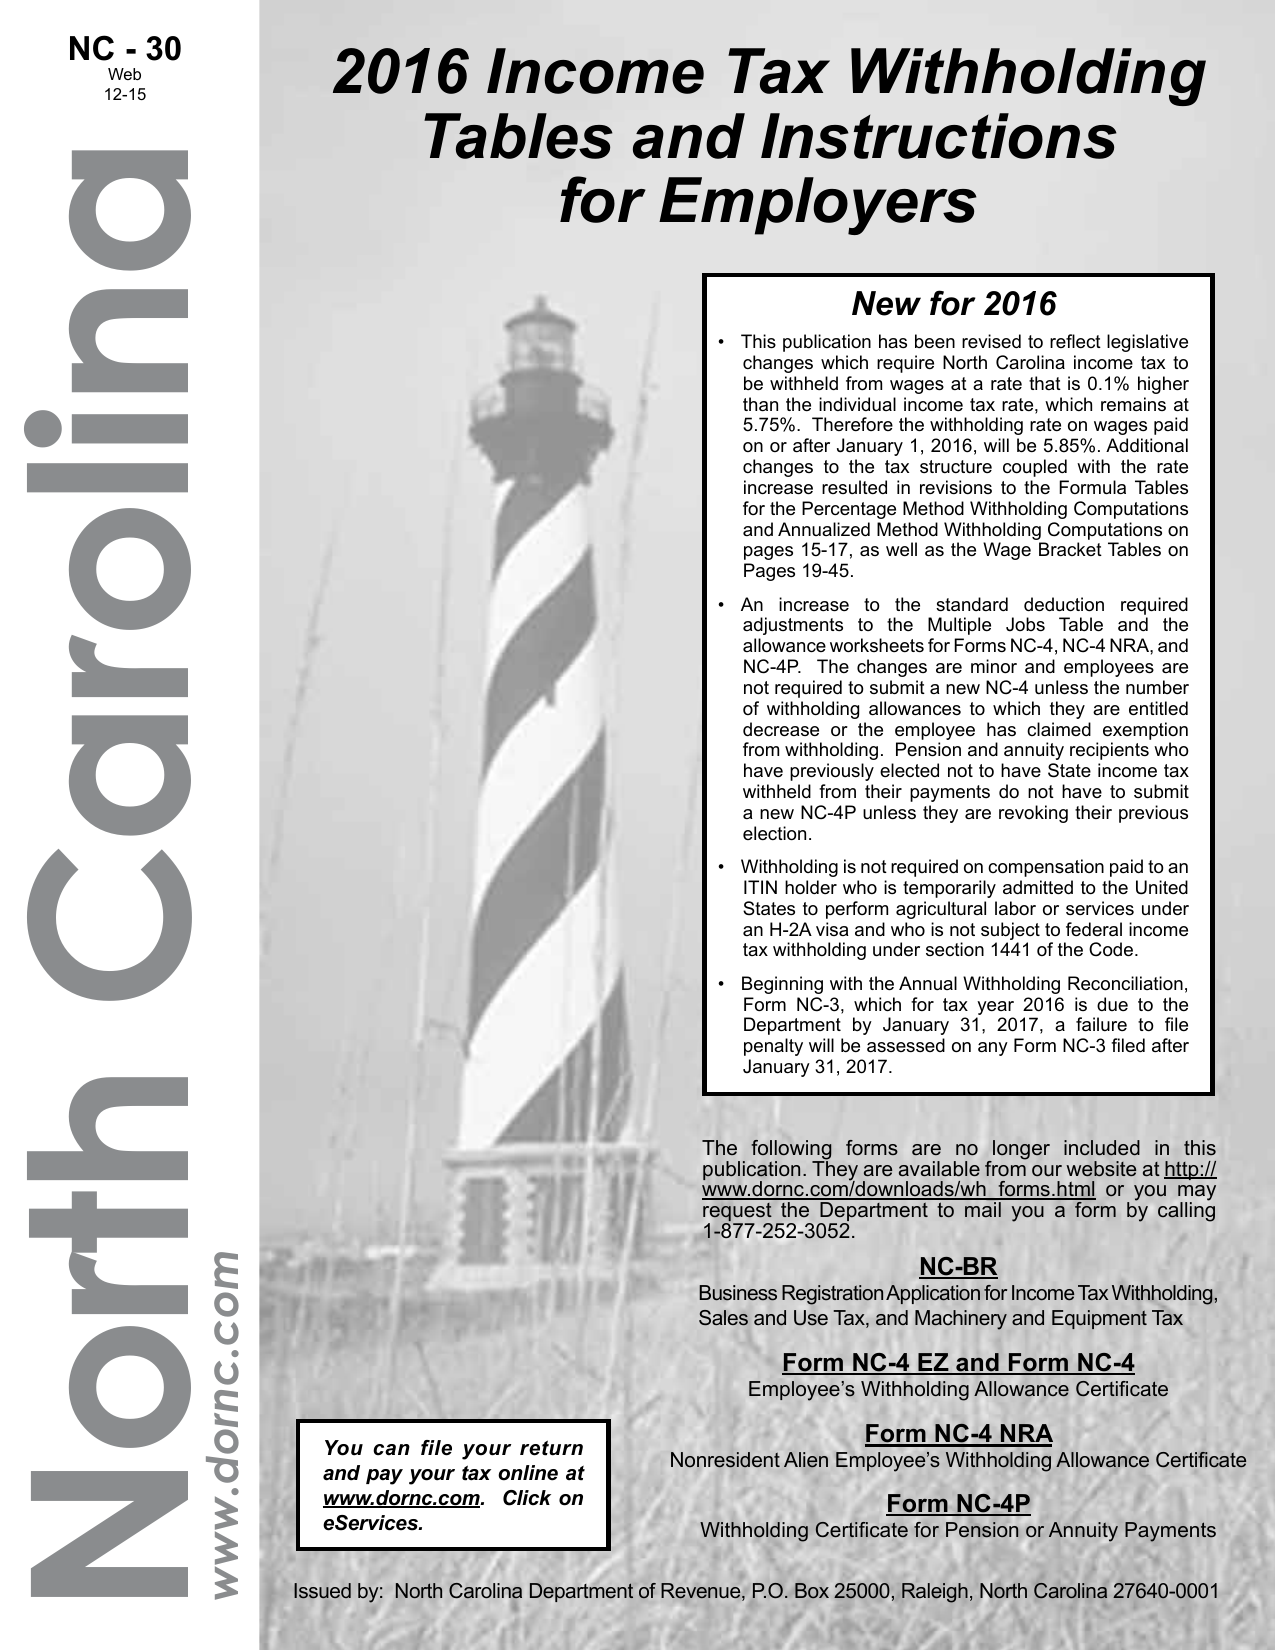 2016 Income Tax Withholding Tables and Instructions for Employers